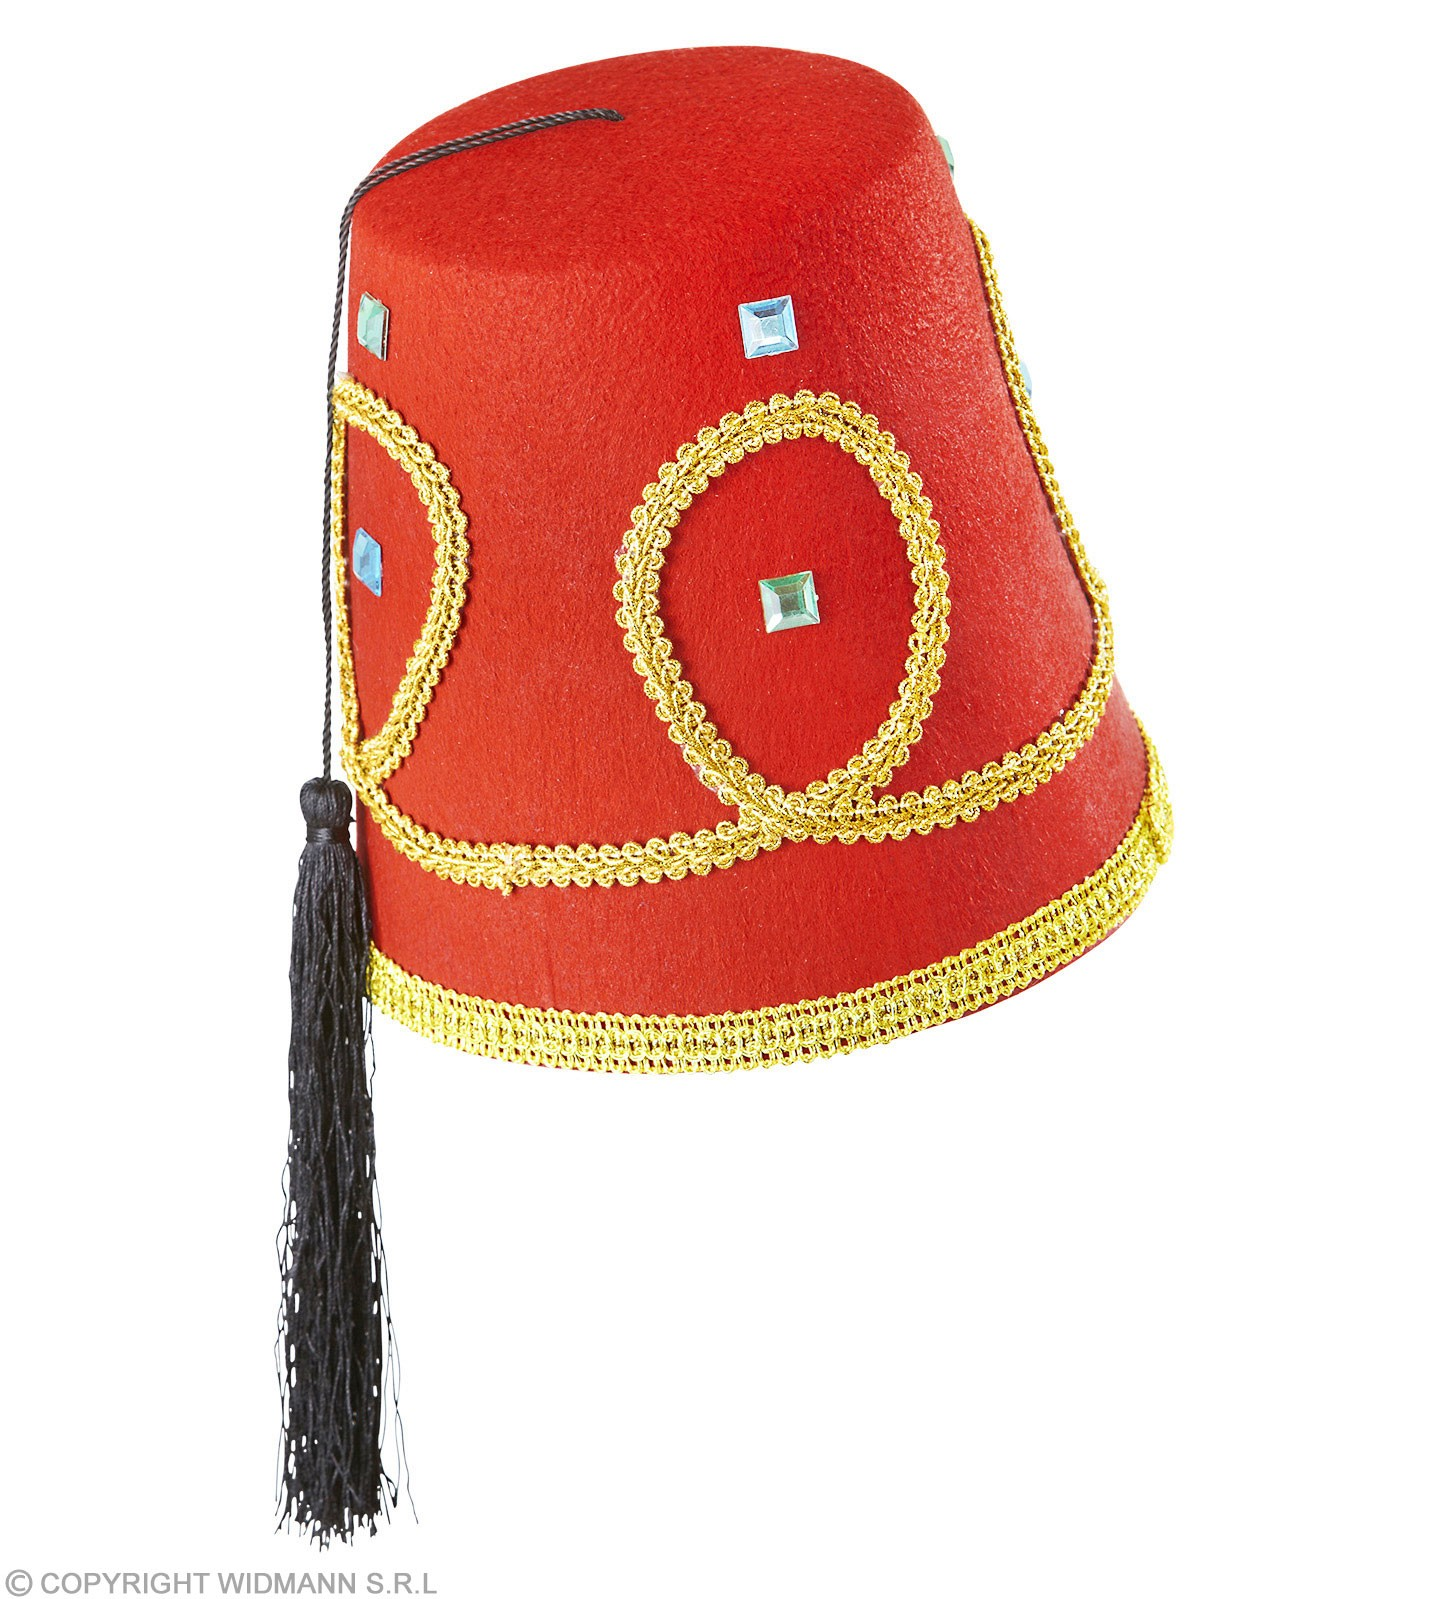 65aac6f98d1093 Buy Boys Fez Hat Deluxe Felt Hats - (Red) - Largest online fancy dress range  in the UK - Price Guarantee & FREE Delivery